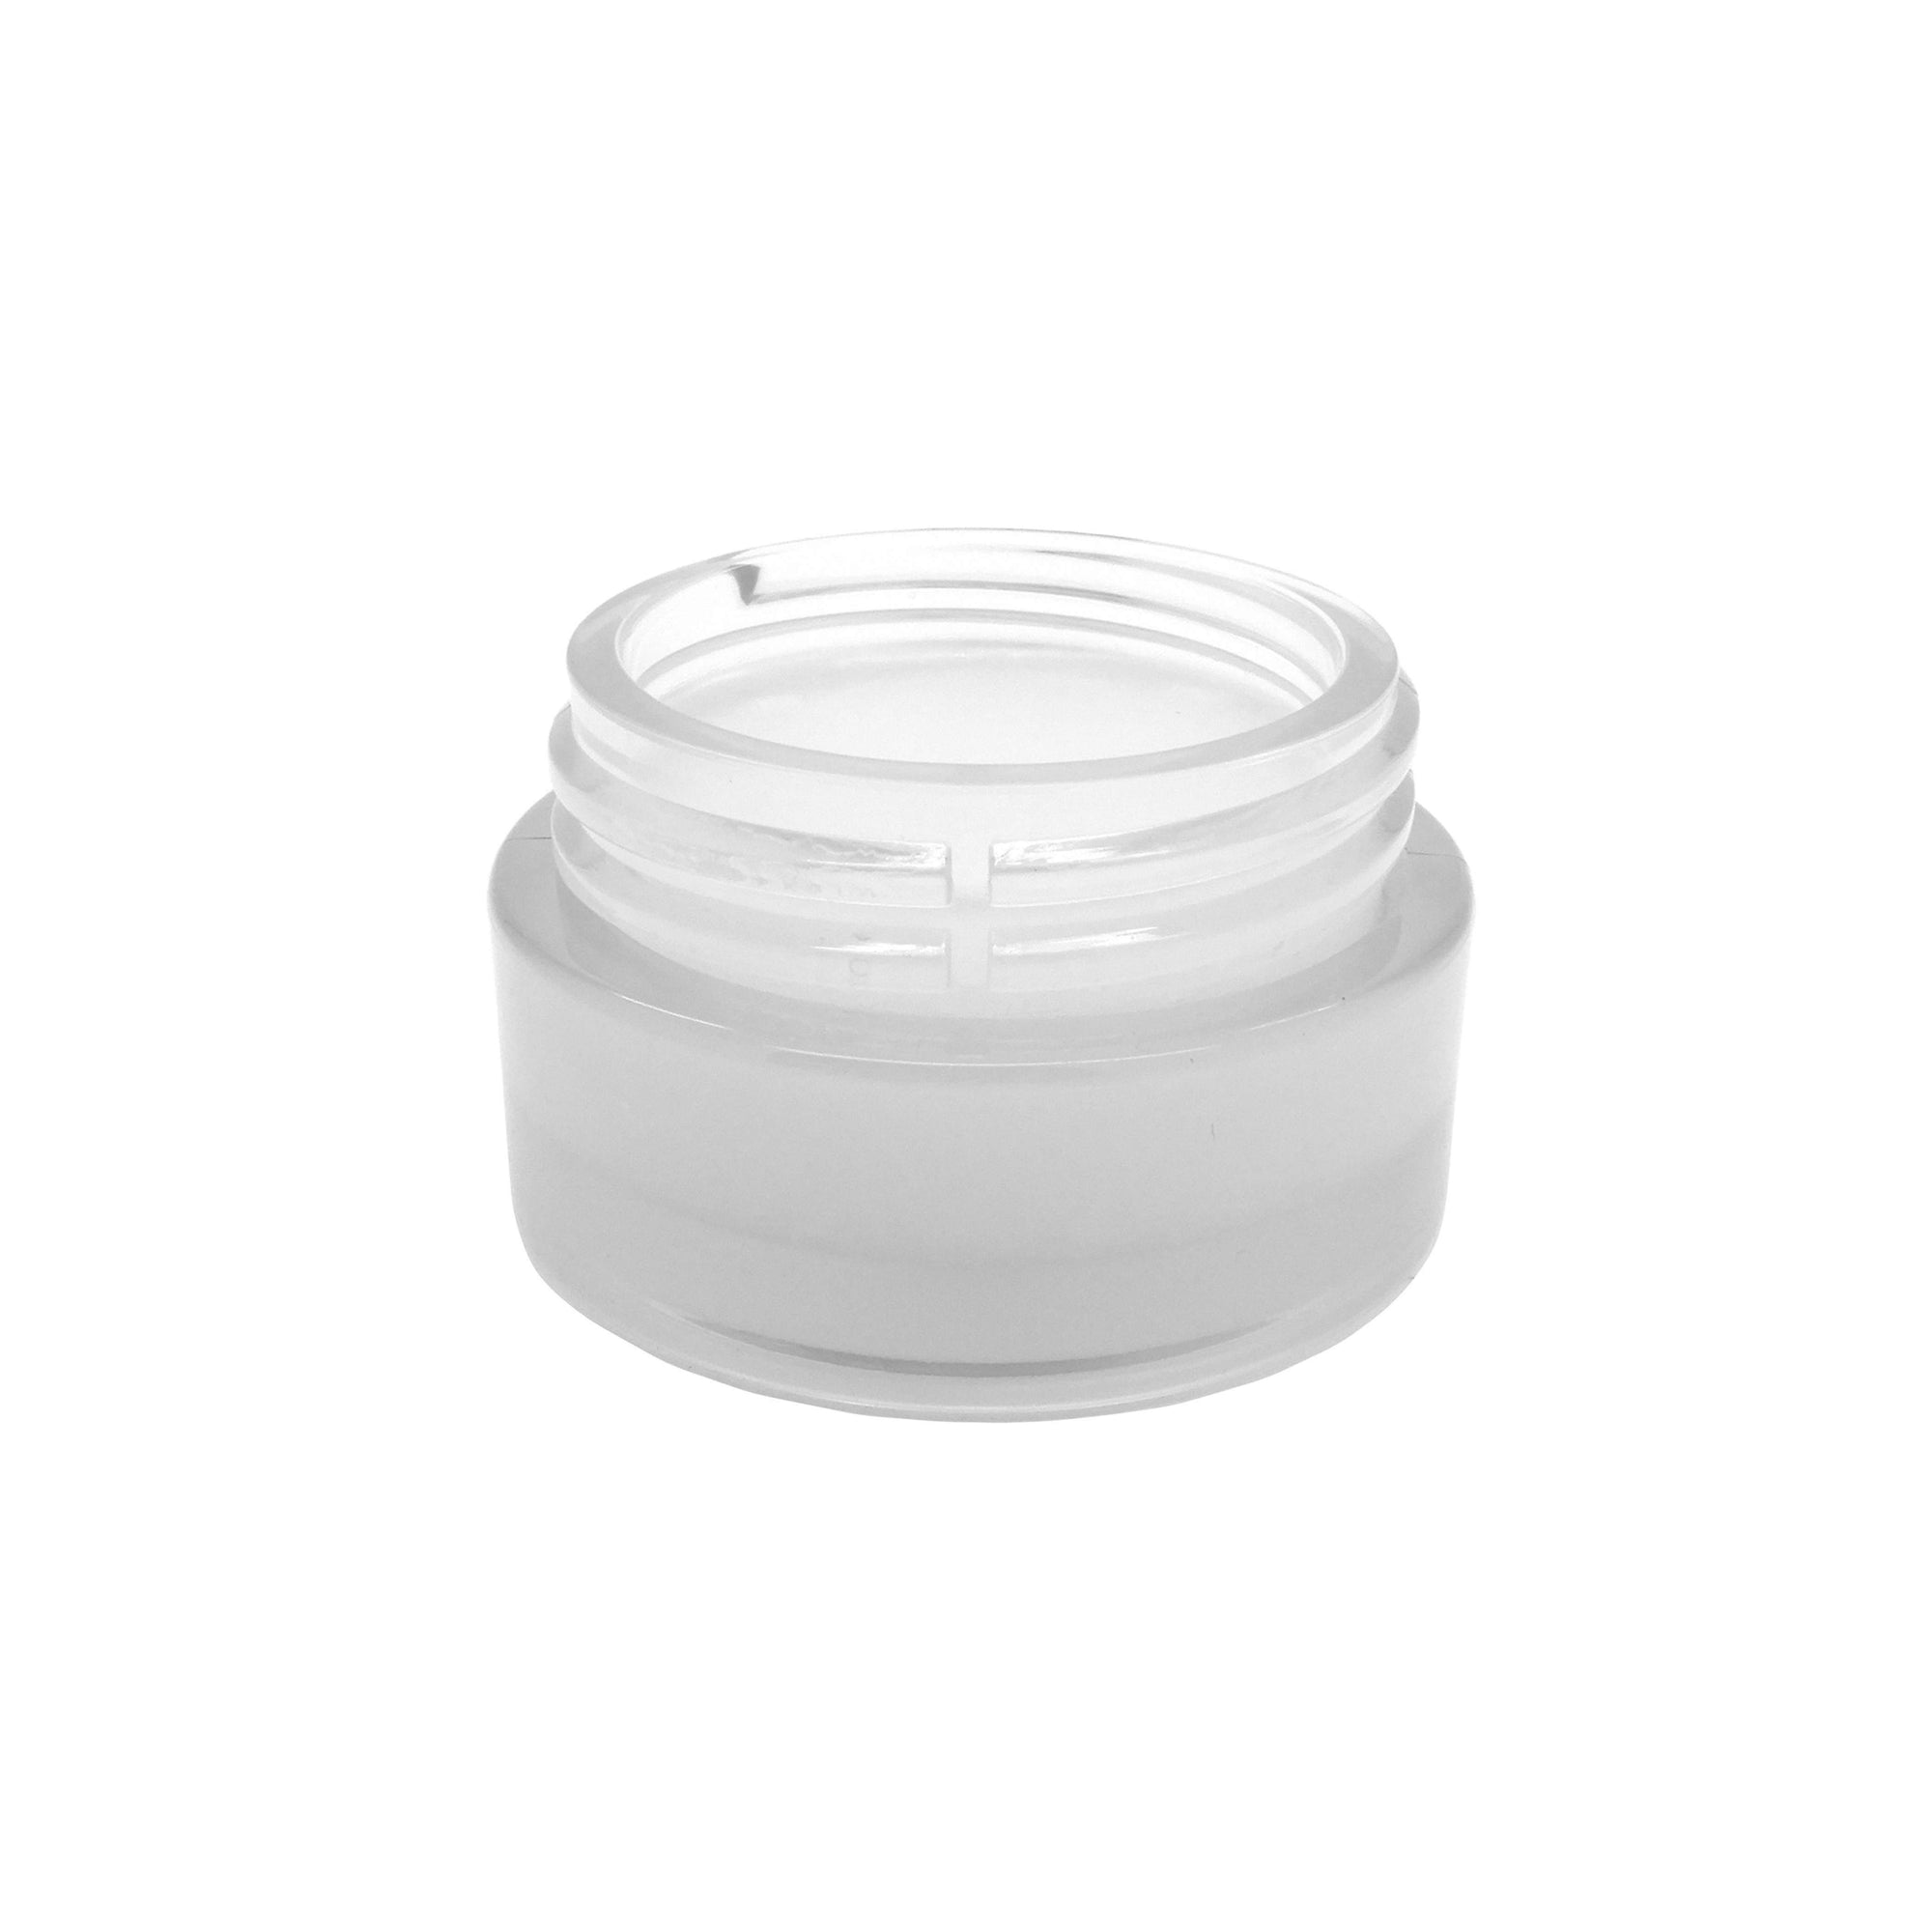 W7 Jelly Crush Lip Scrub